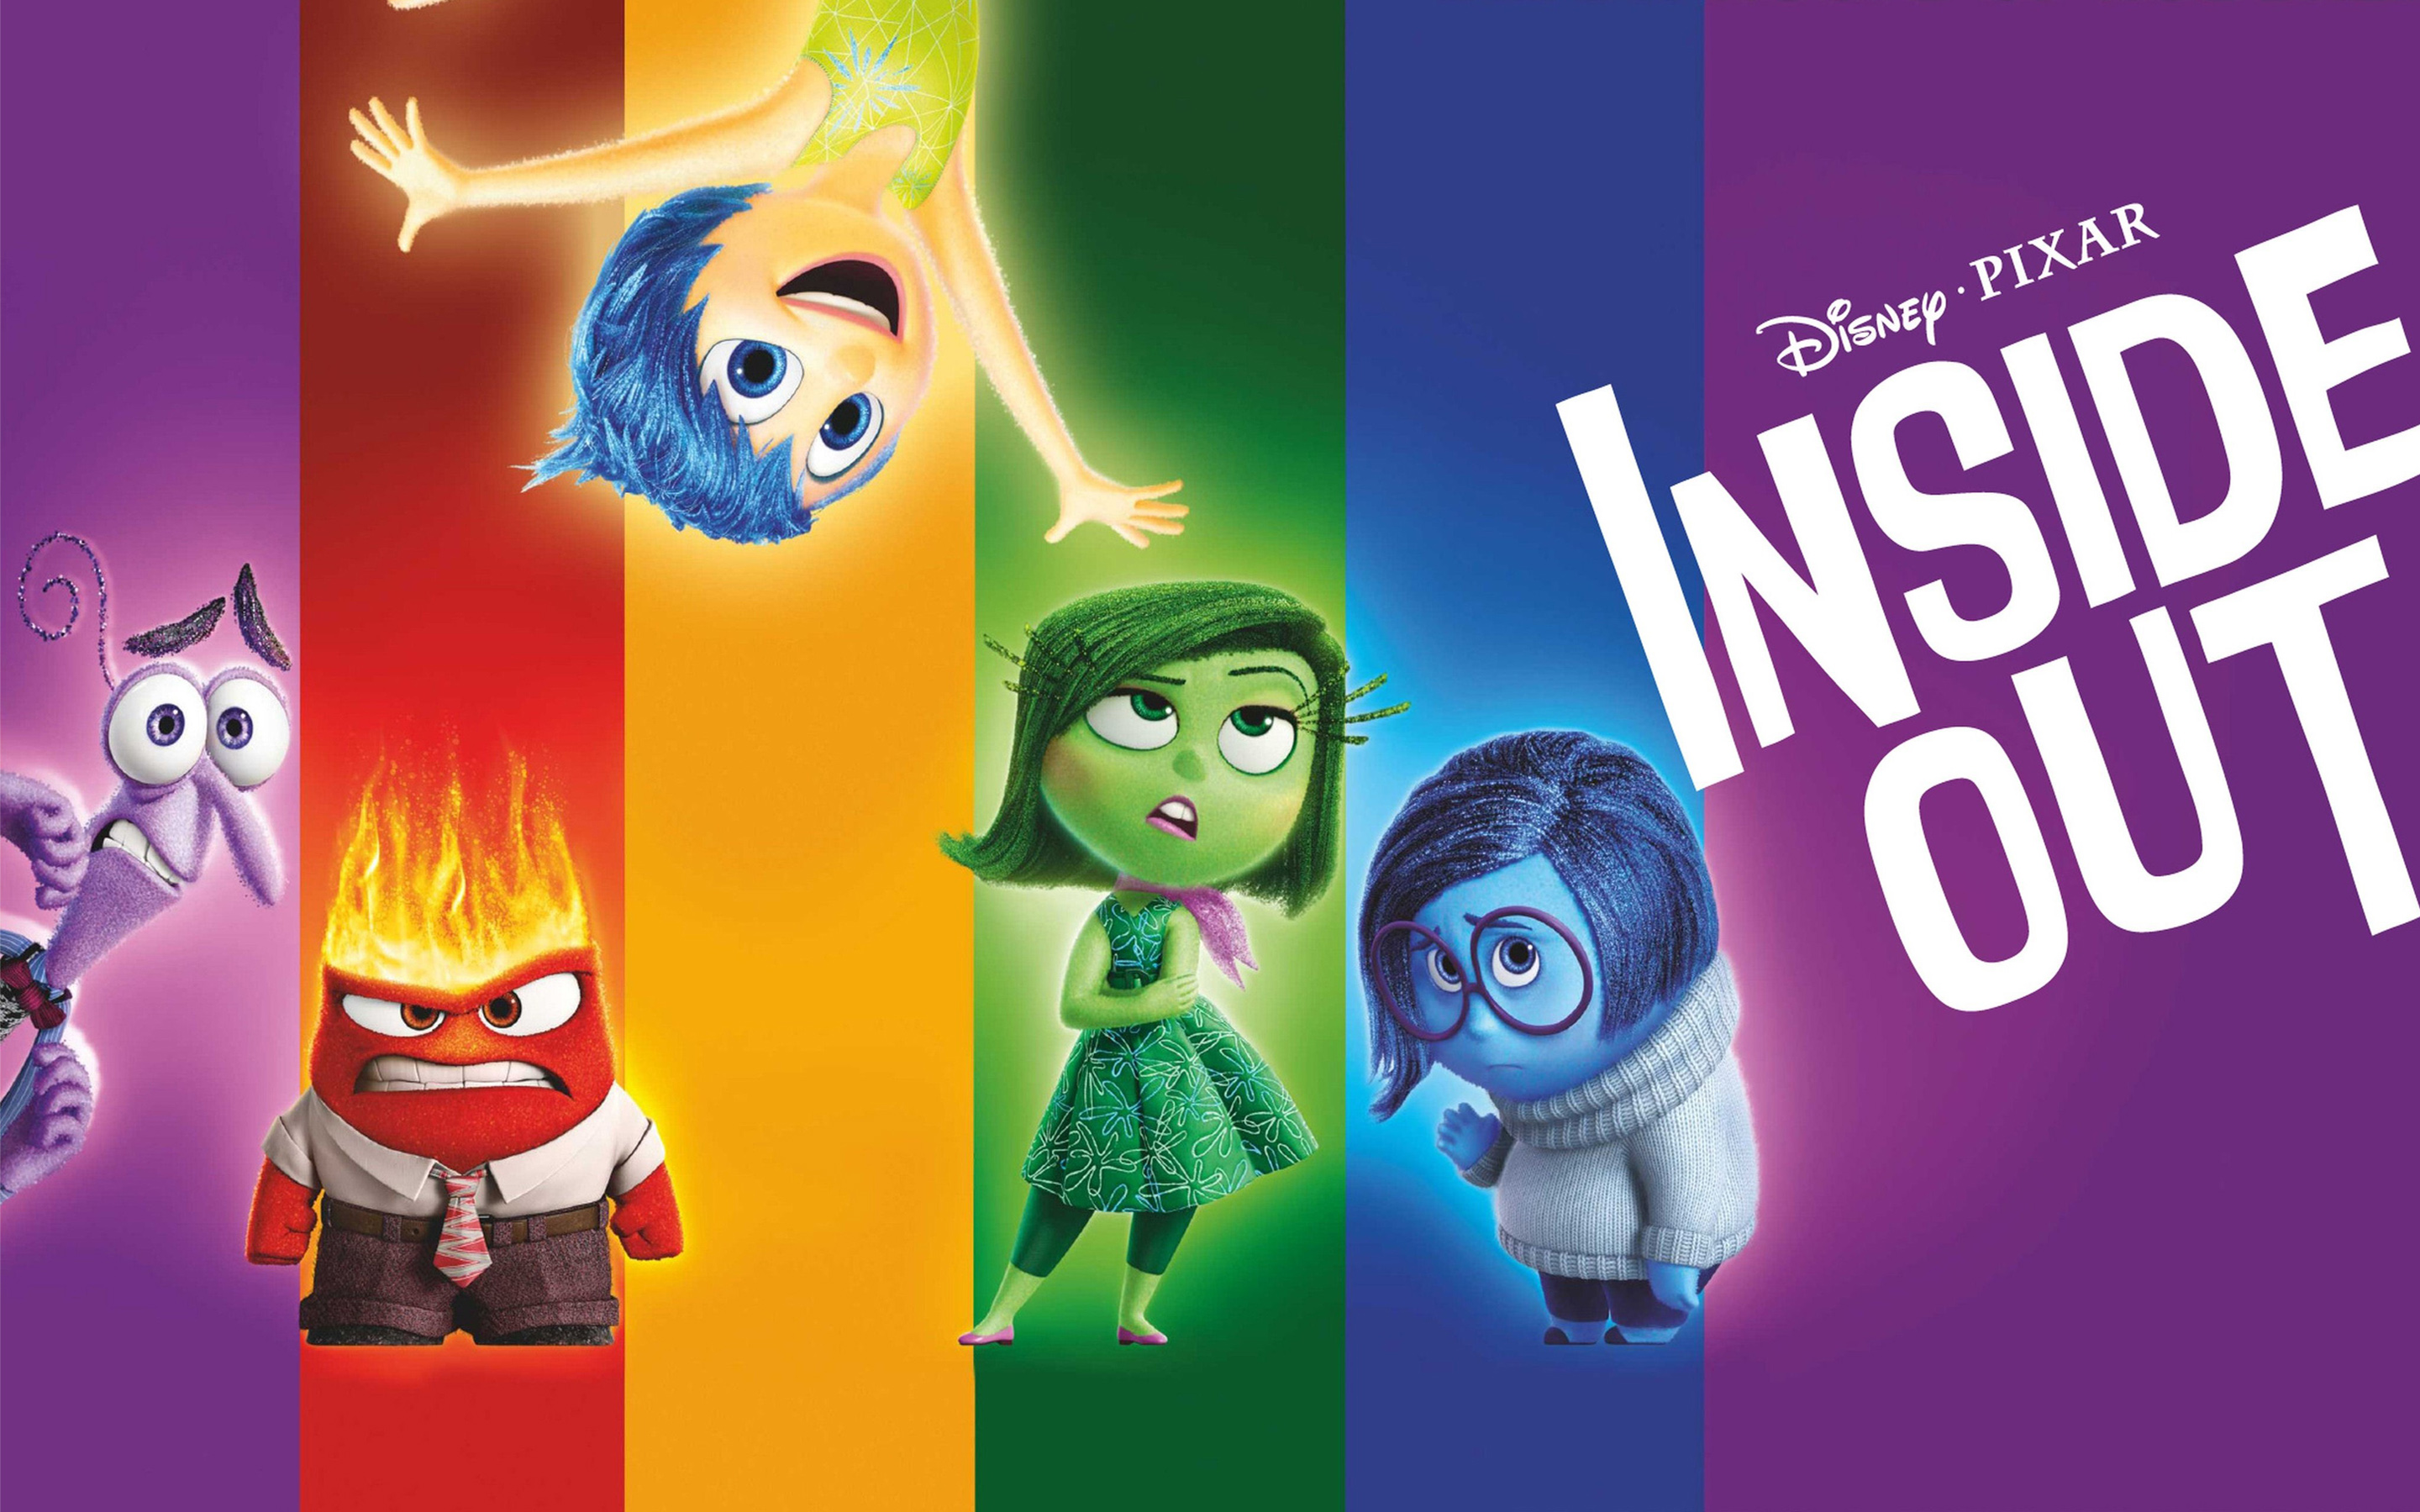 Inside Out: Del revés